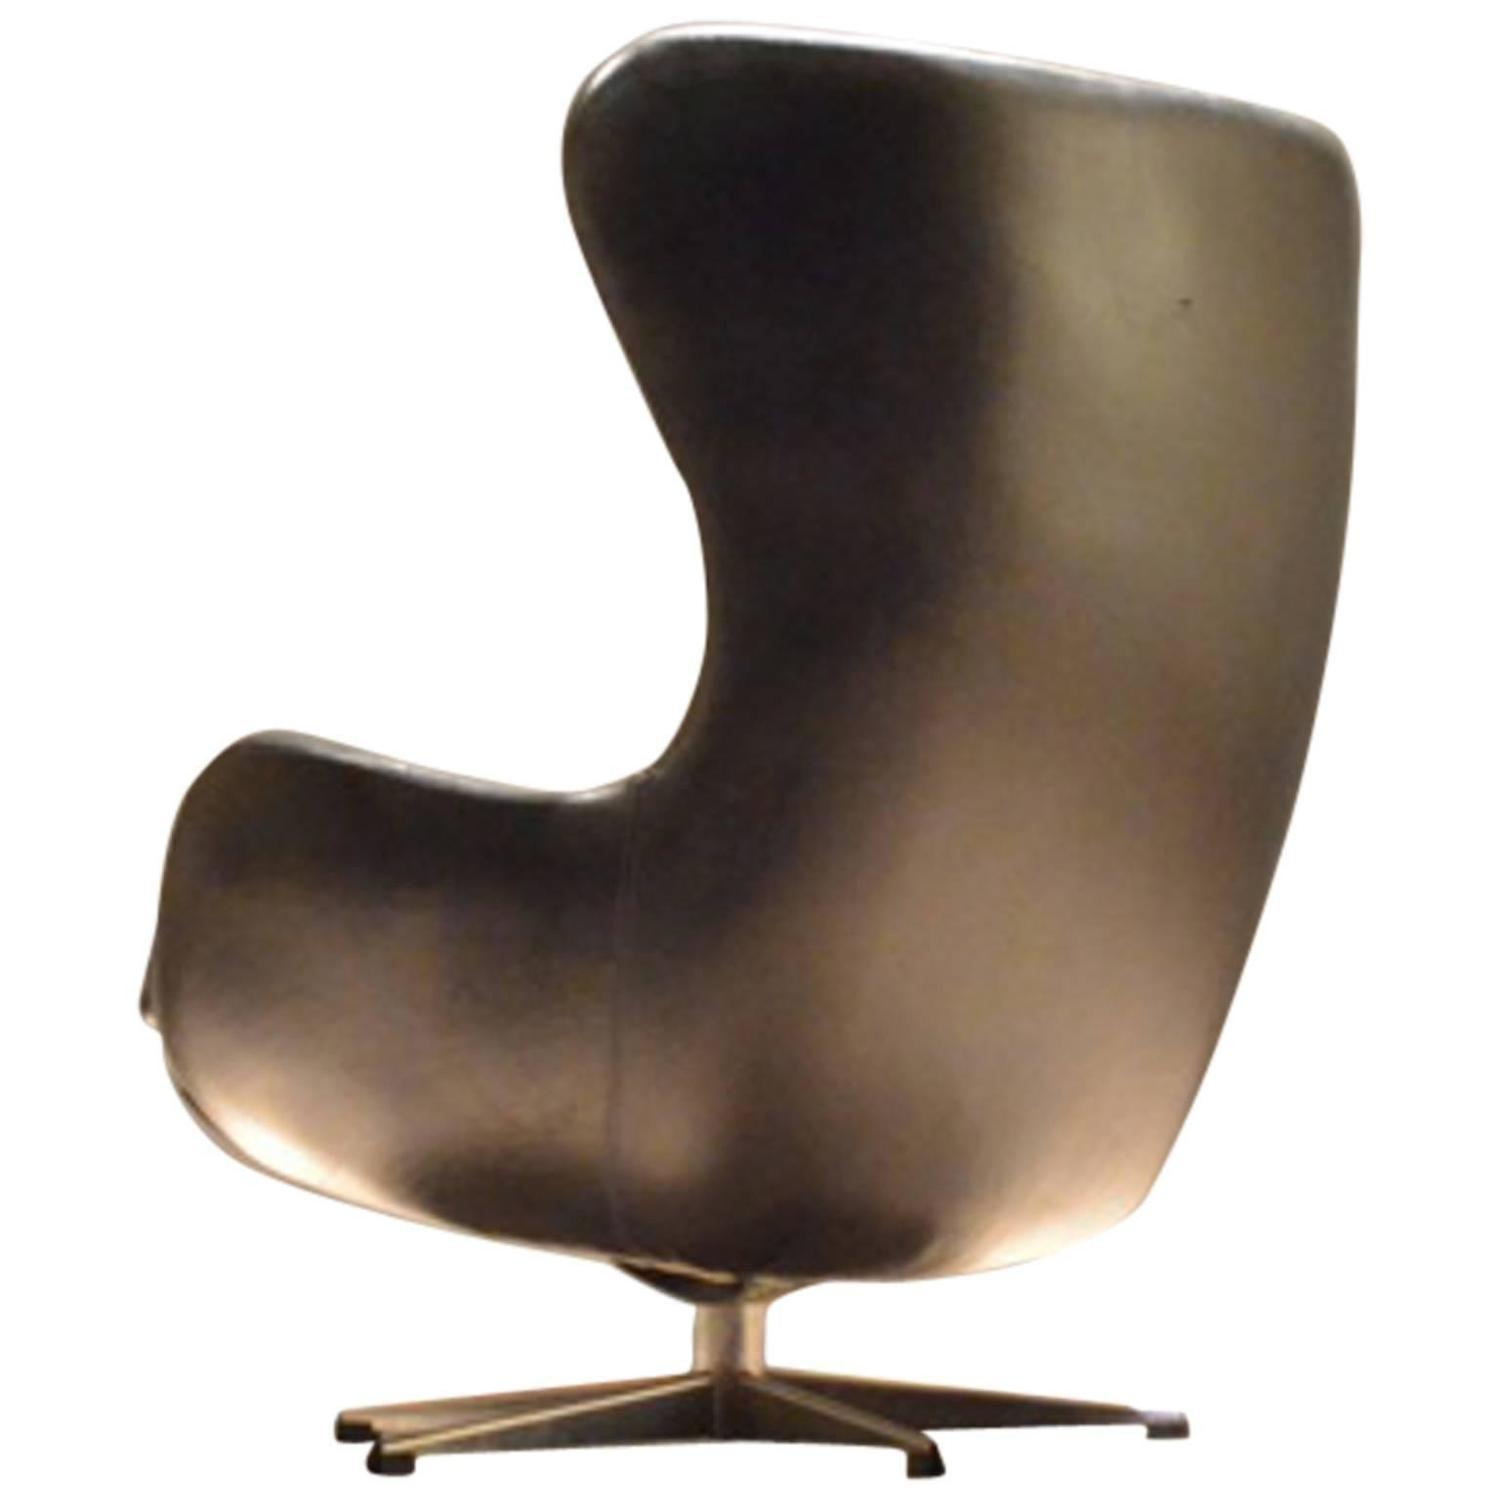 Egg Shaped Chairs Danish Black Leather Egg Shaped Cocoon Easy Chair At 1stdibs